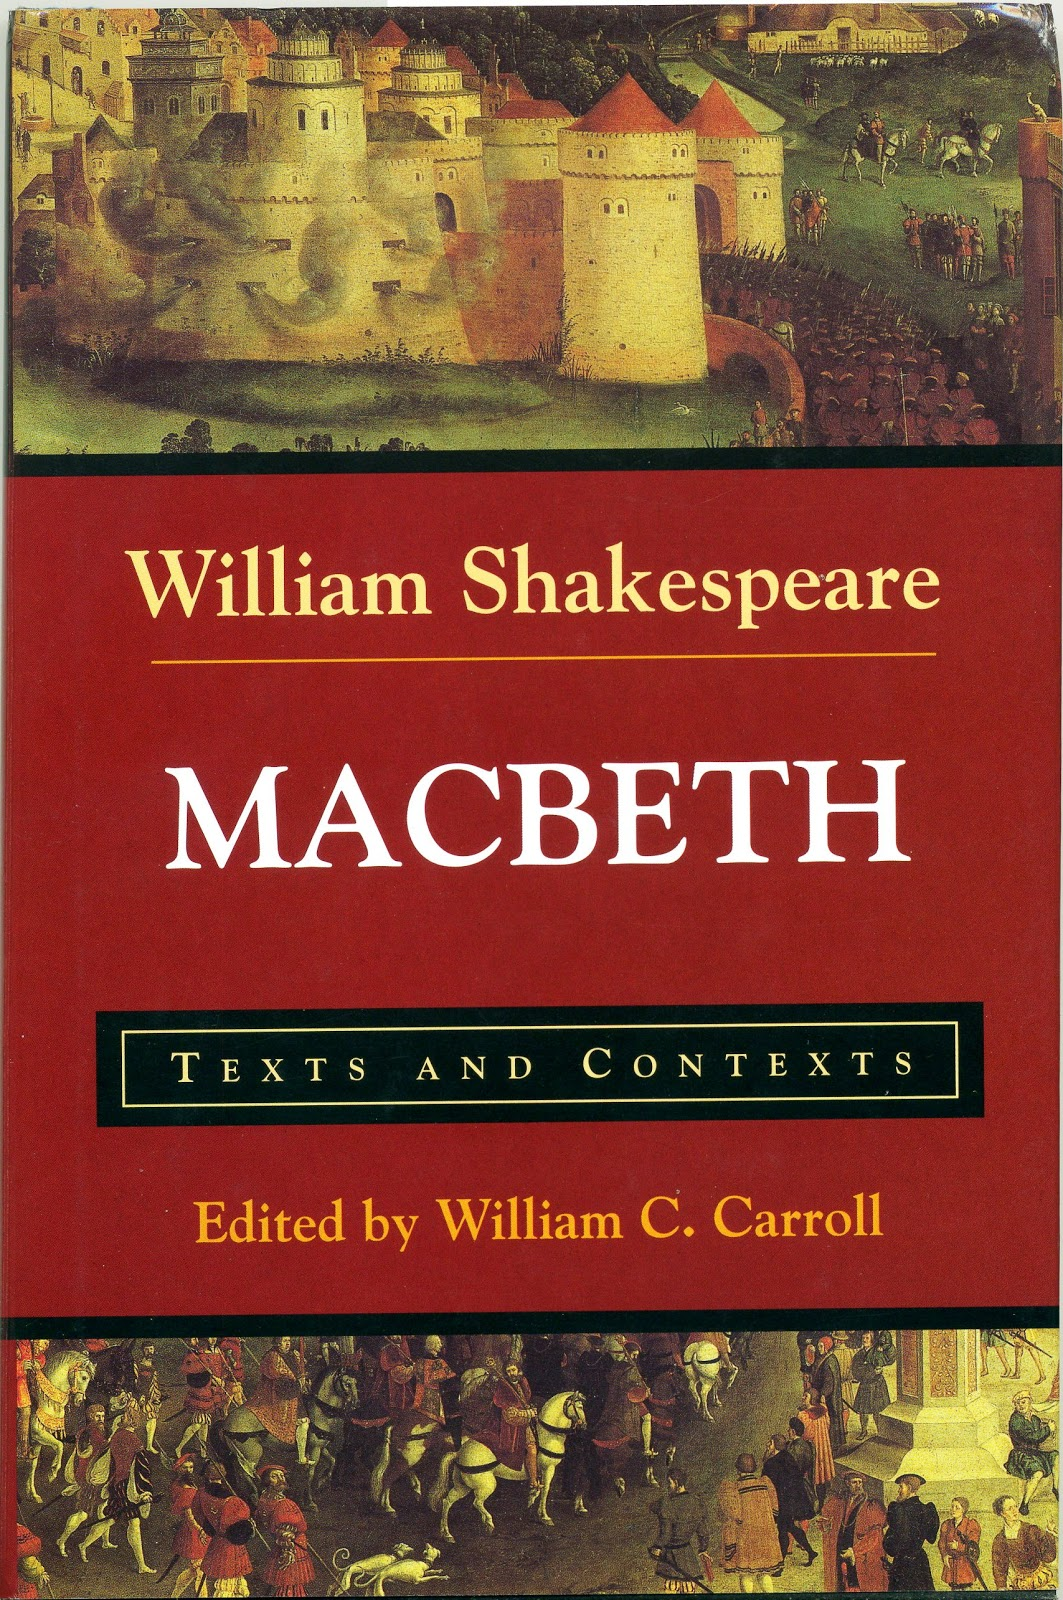 the greedy reputation of macbeth a play by william shakespeare Get an answer for 'what are some examples of personification in macbeth by william shakespeare  what is the theme of the play macbeth by william shakespeare  greed and total self .